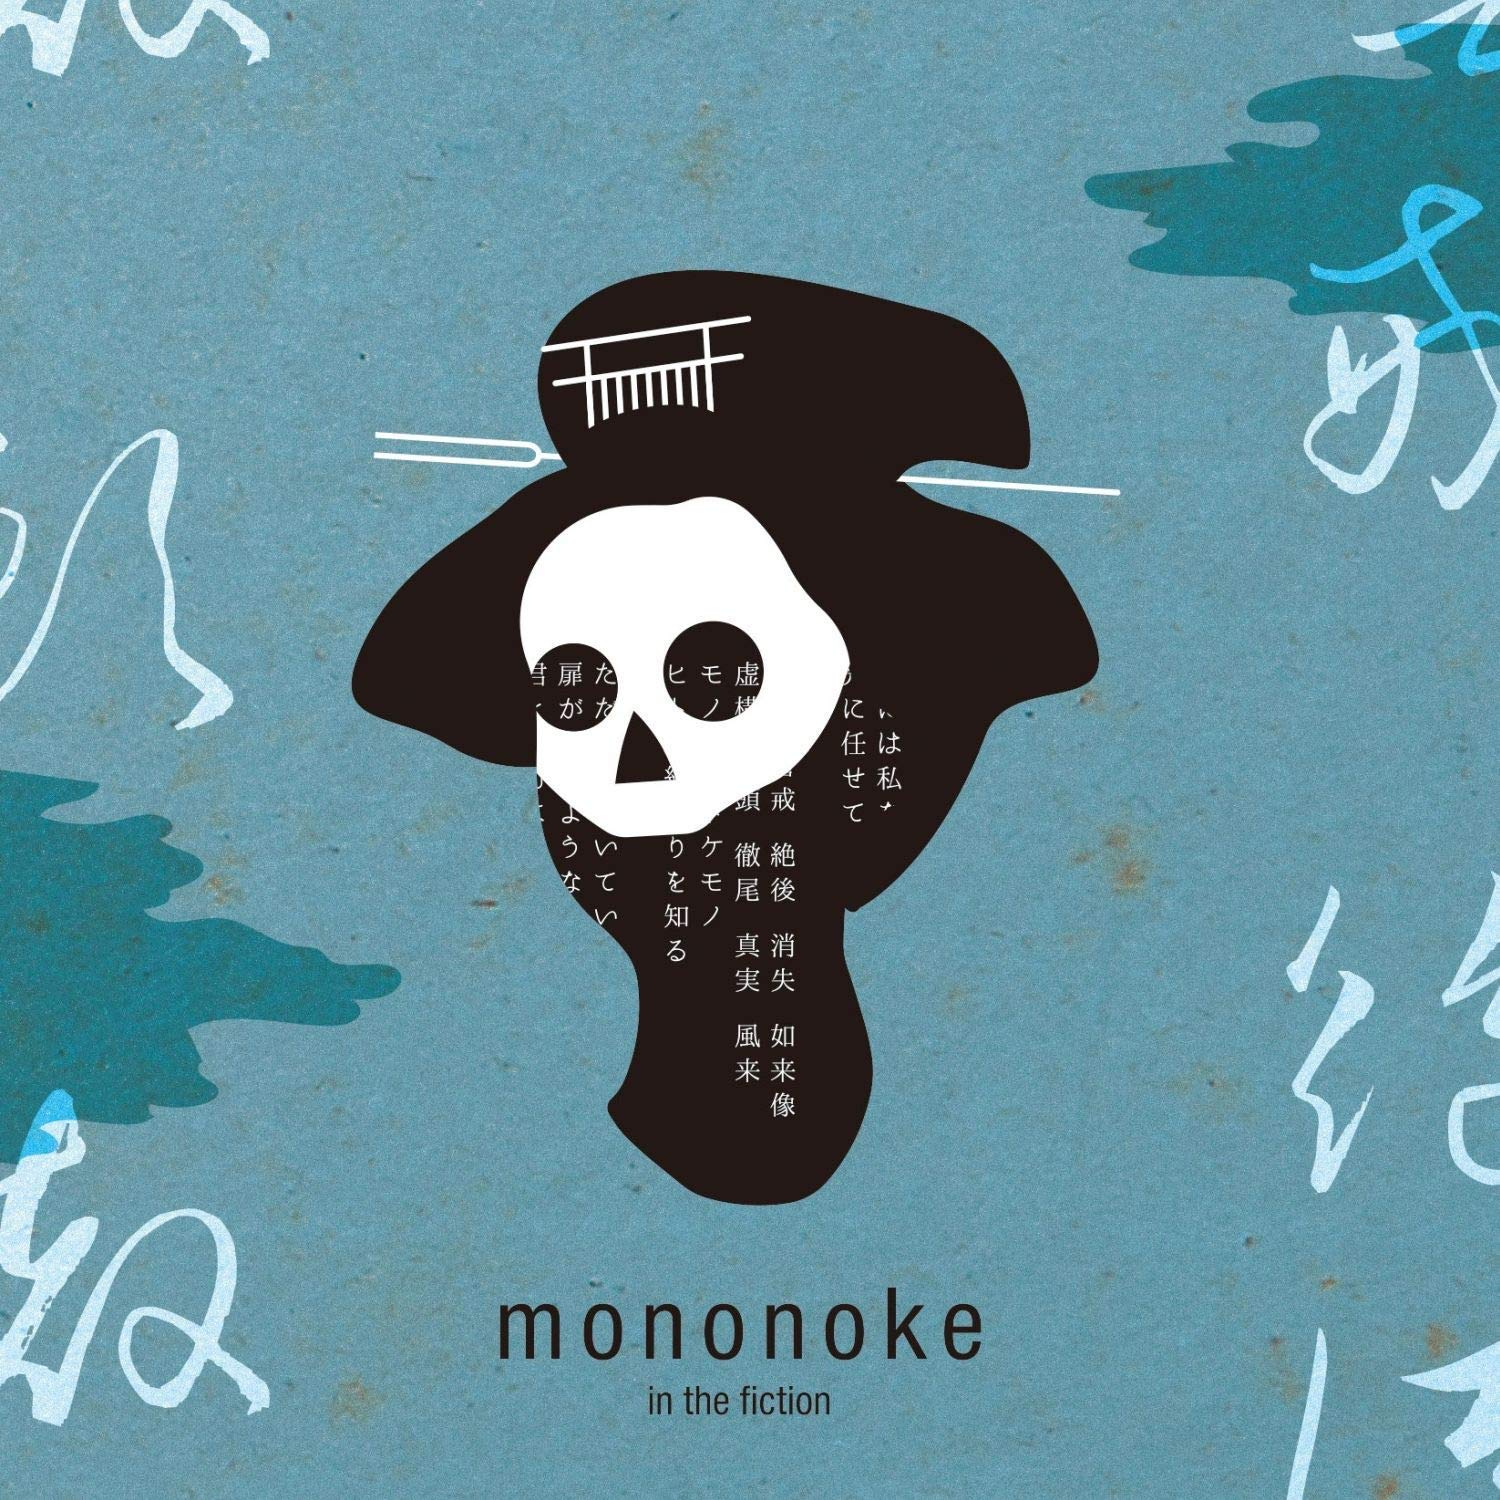 Lie and a Chameleon - Mononoke in the Fiction モノノケ・イン・ザ・フィクション / 嘘とカメレオン